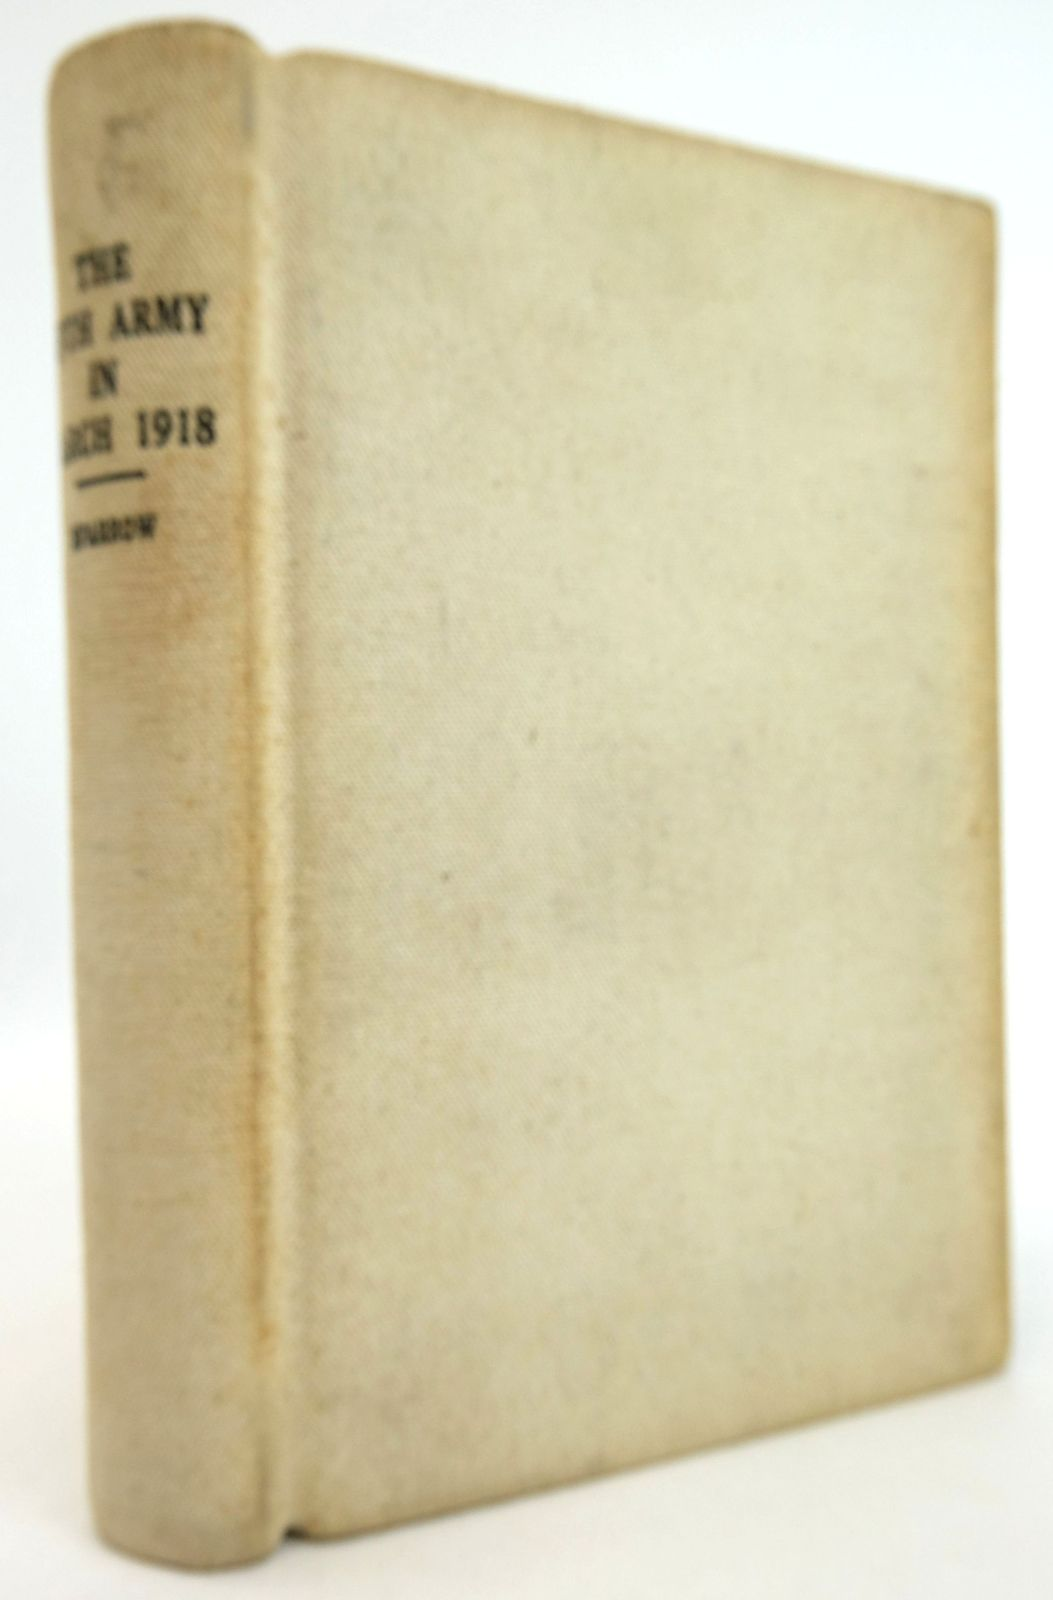 Photo of THE FIFTH ARMY IN MARCH 1918 written by Sparrow, Walter Shaw Gough, Hubert published by John Lane The Bodley Head (STOCK CODE: 1819528)  for sale by Stella & Rose's Books